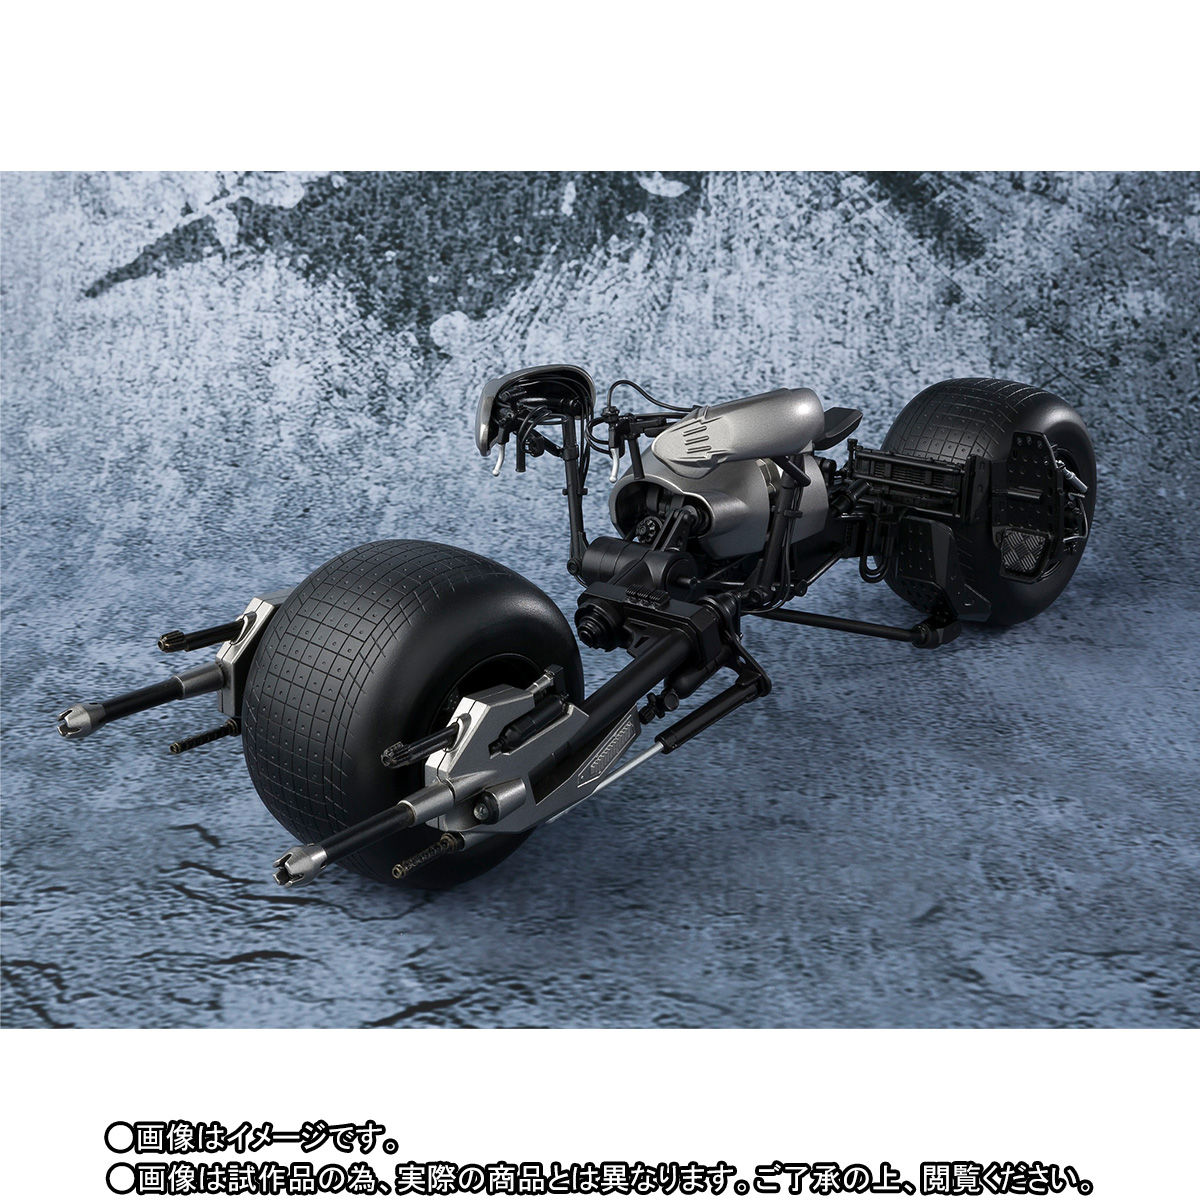 S.H. Figuarts The Dark Knight Batpod Official Product Details & Images